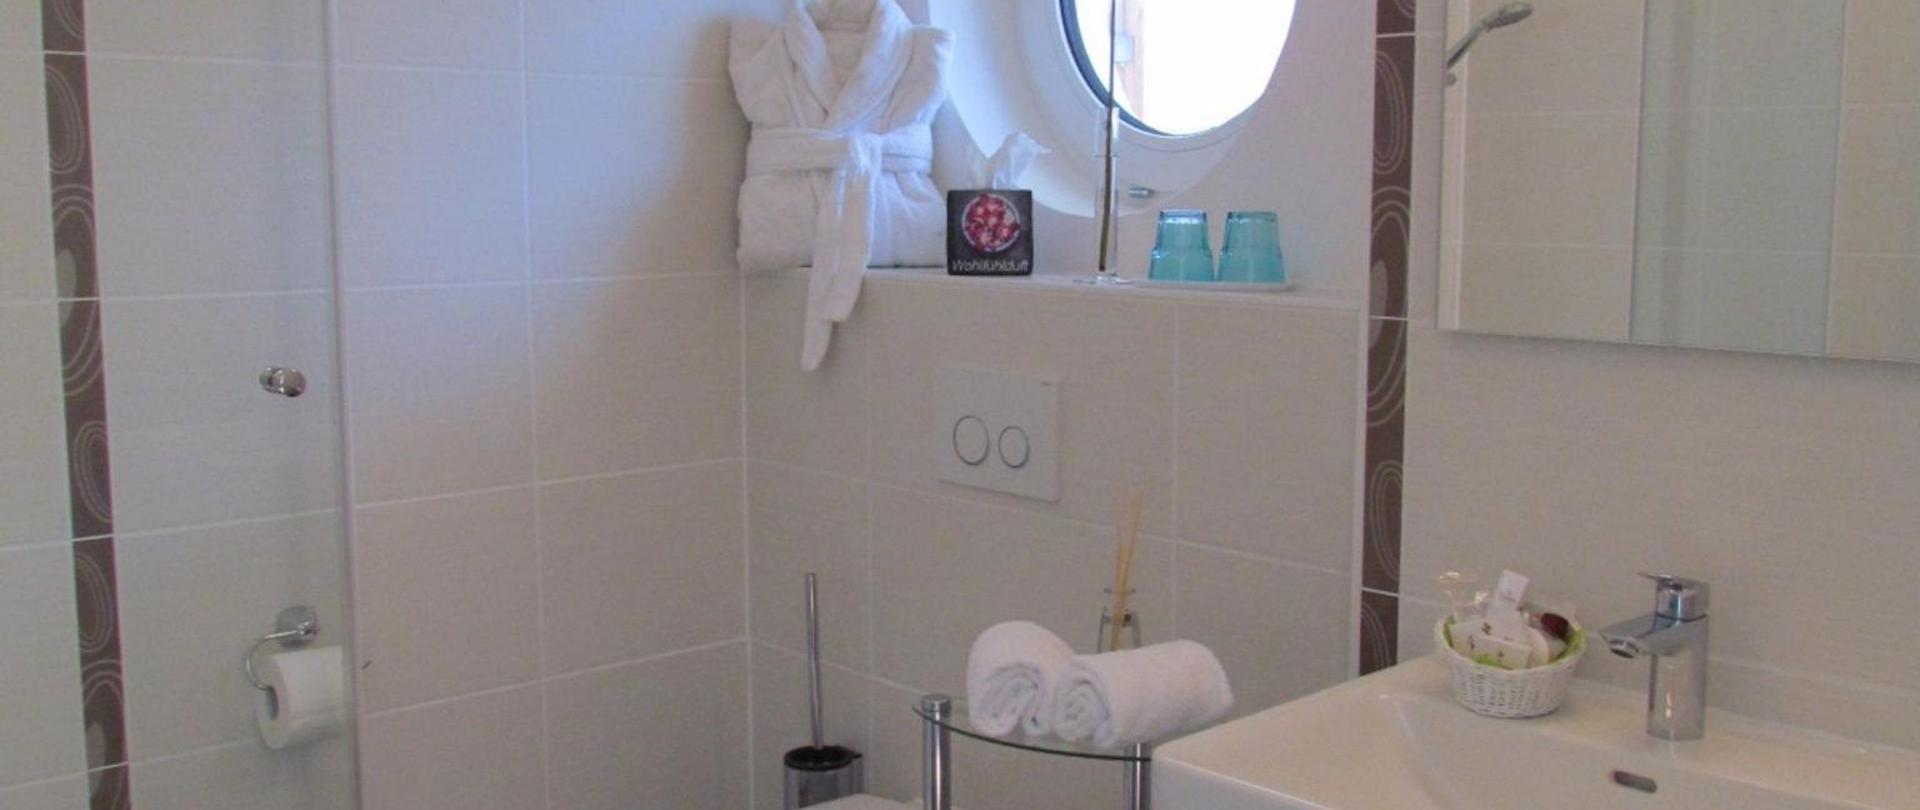 Bathroom with Shower.JPG